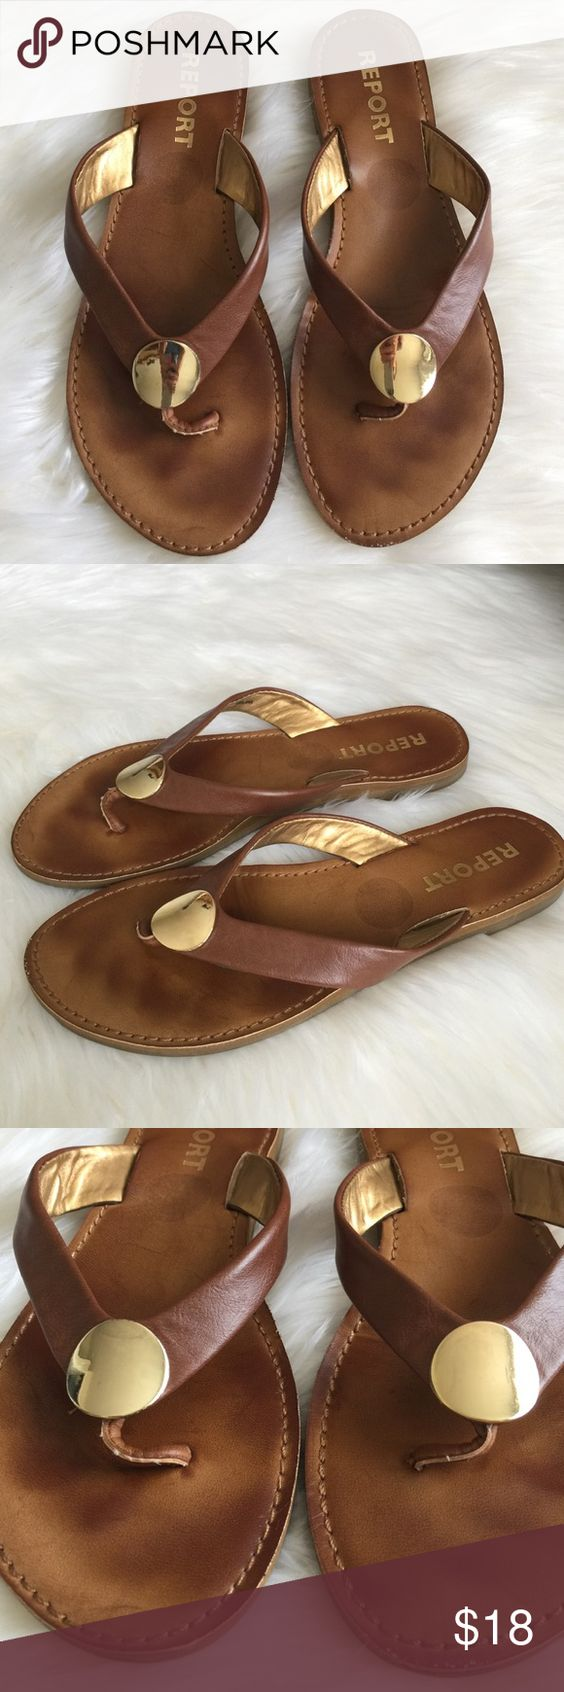 Beautiful Report Canel & Gold Leather Sandals Fabulous and very comfortable sandals!  I love the gold dot detail at the toe and the camel colored leather💕. Gently used, GREAT condition.  Only worn a couple of times. Report Shoes Sandals